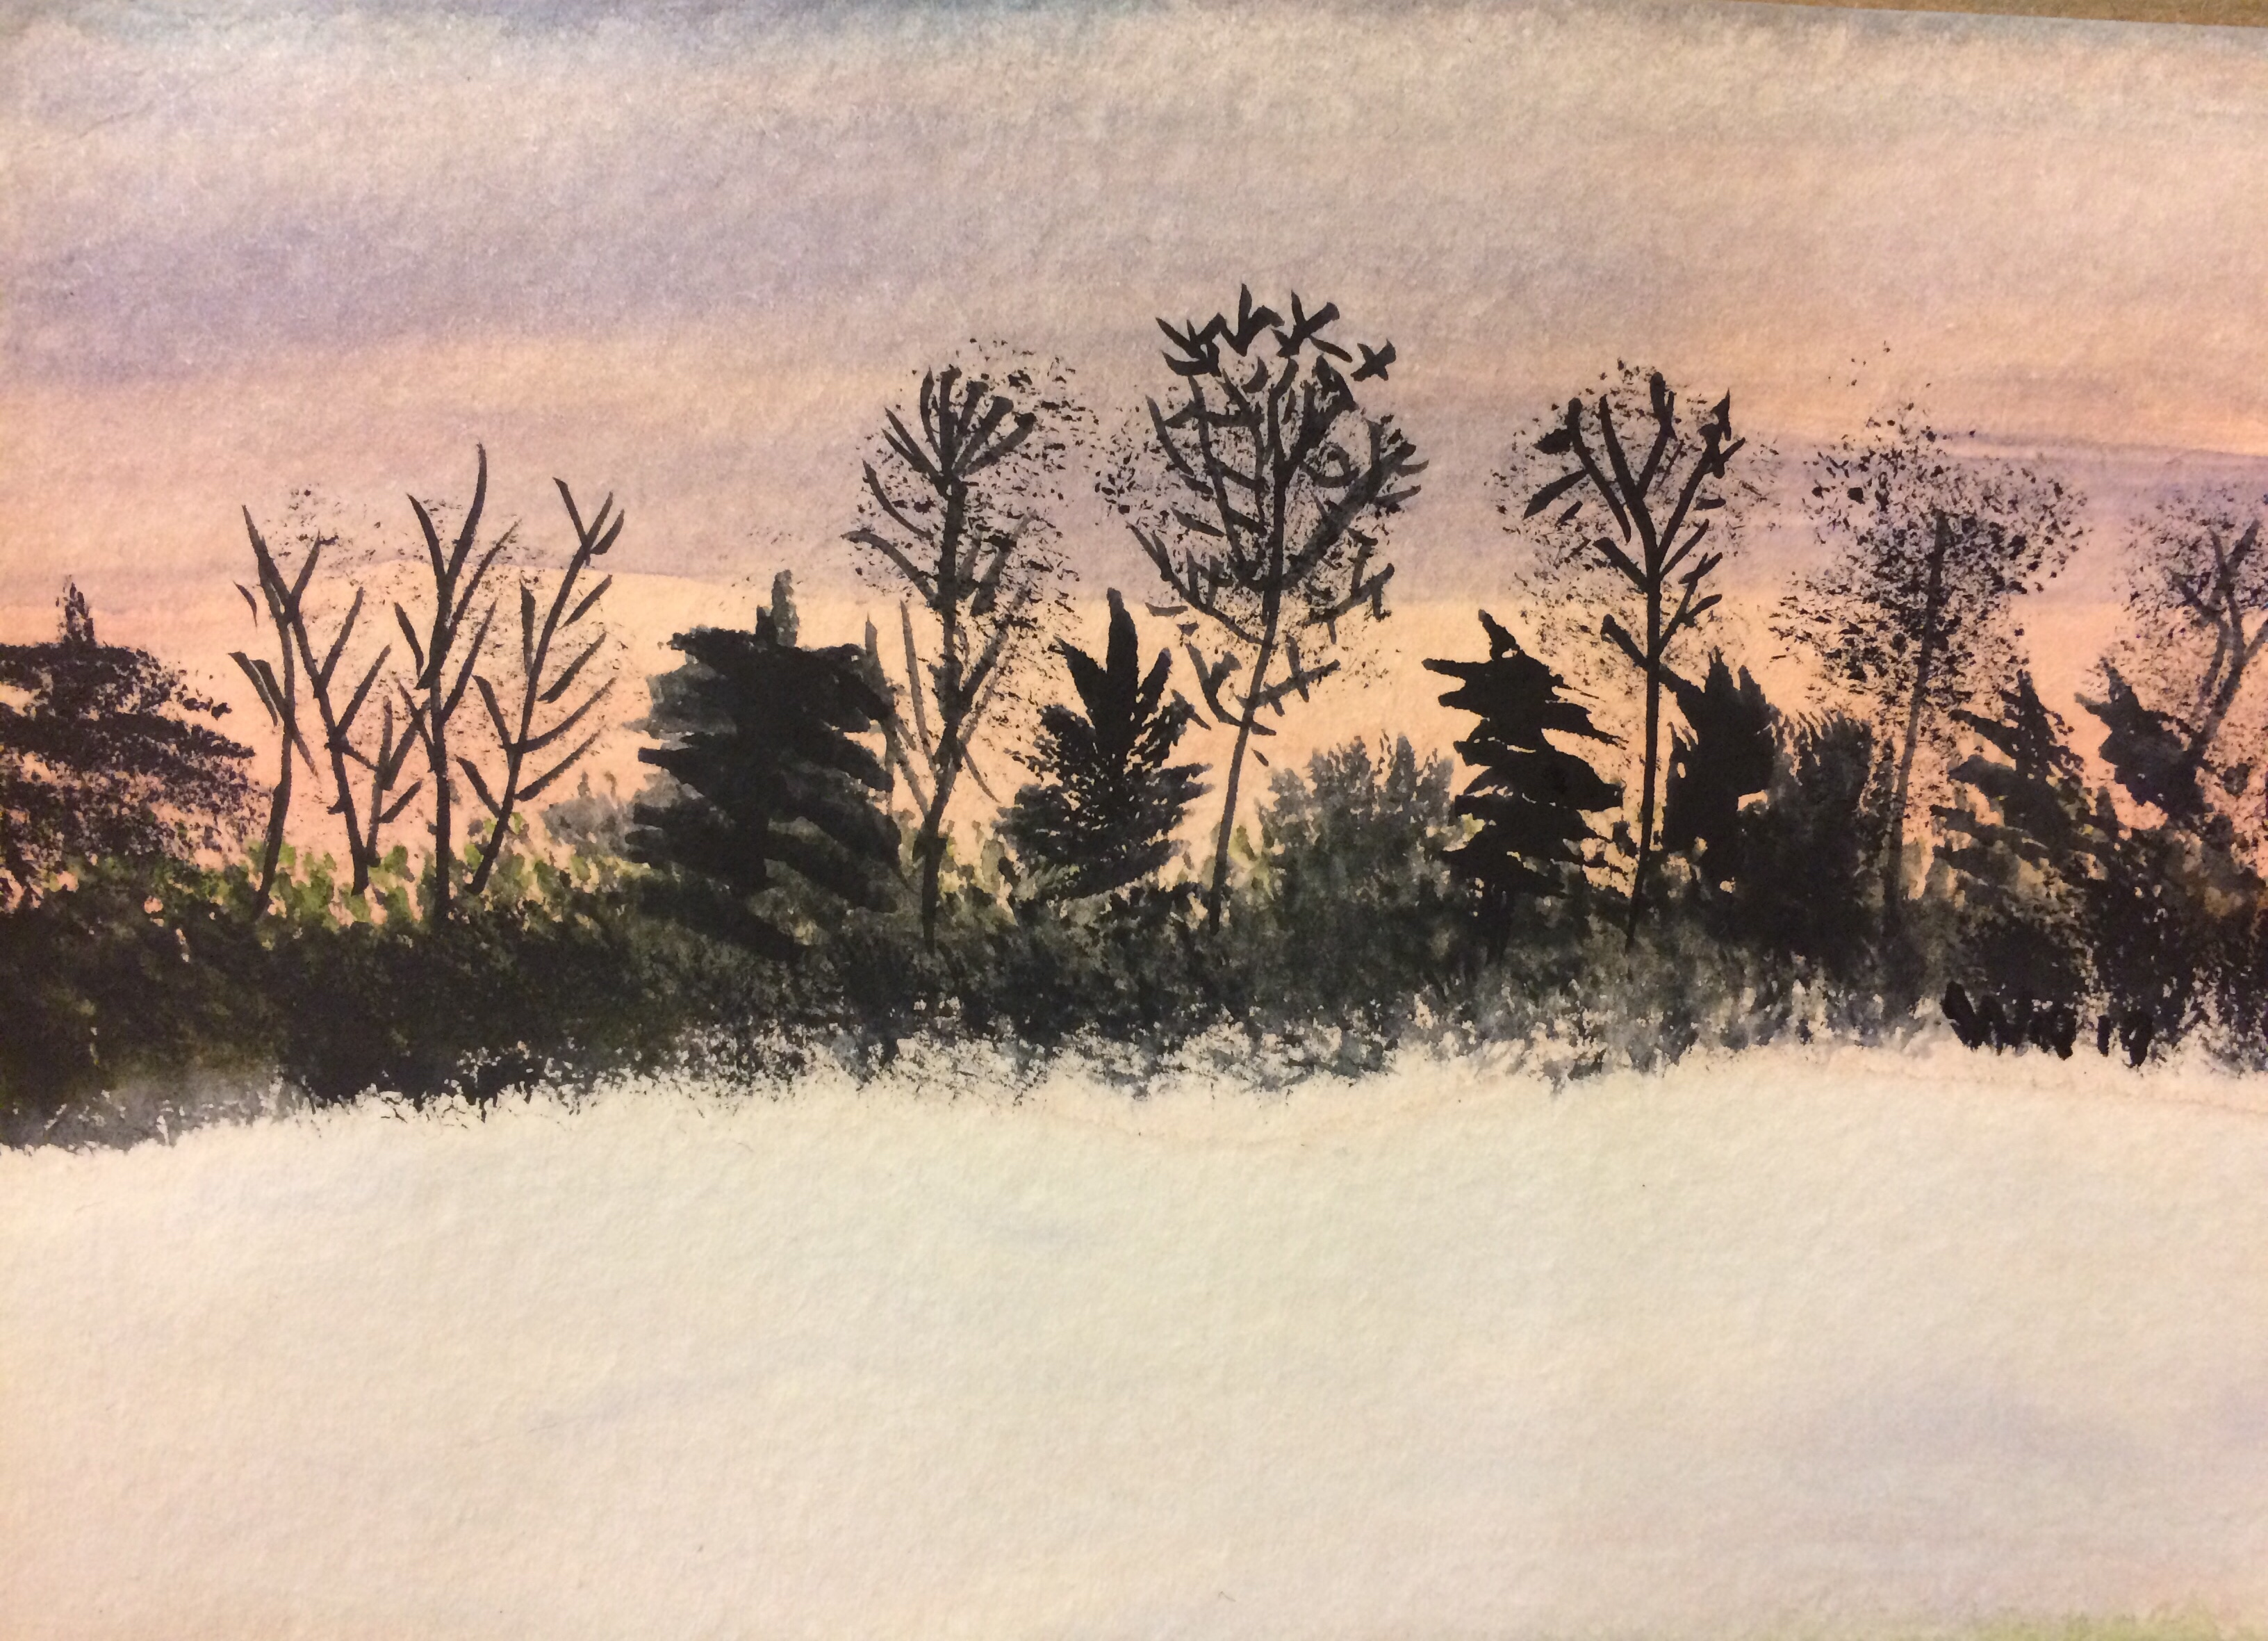 watercolour painting of sunset with trees silhouetted in background